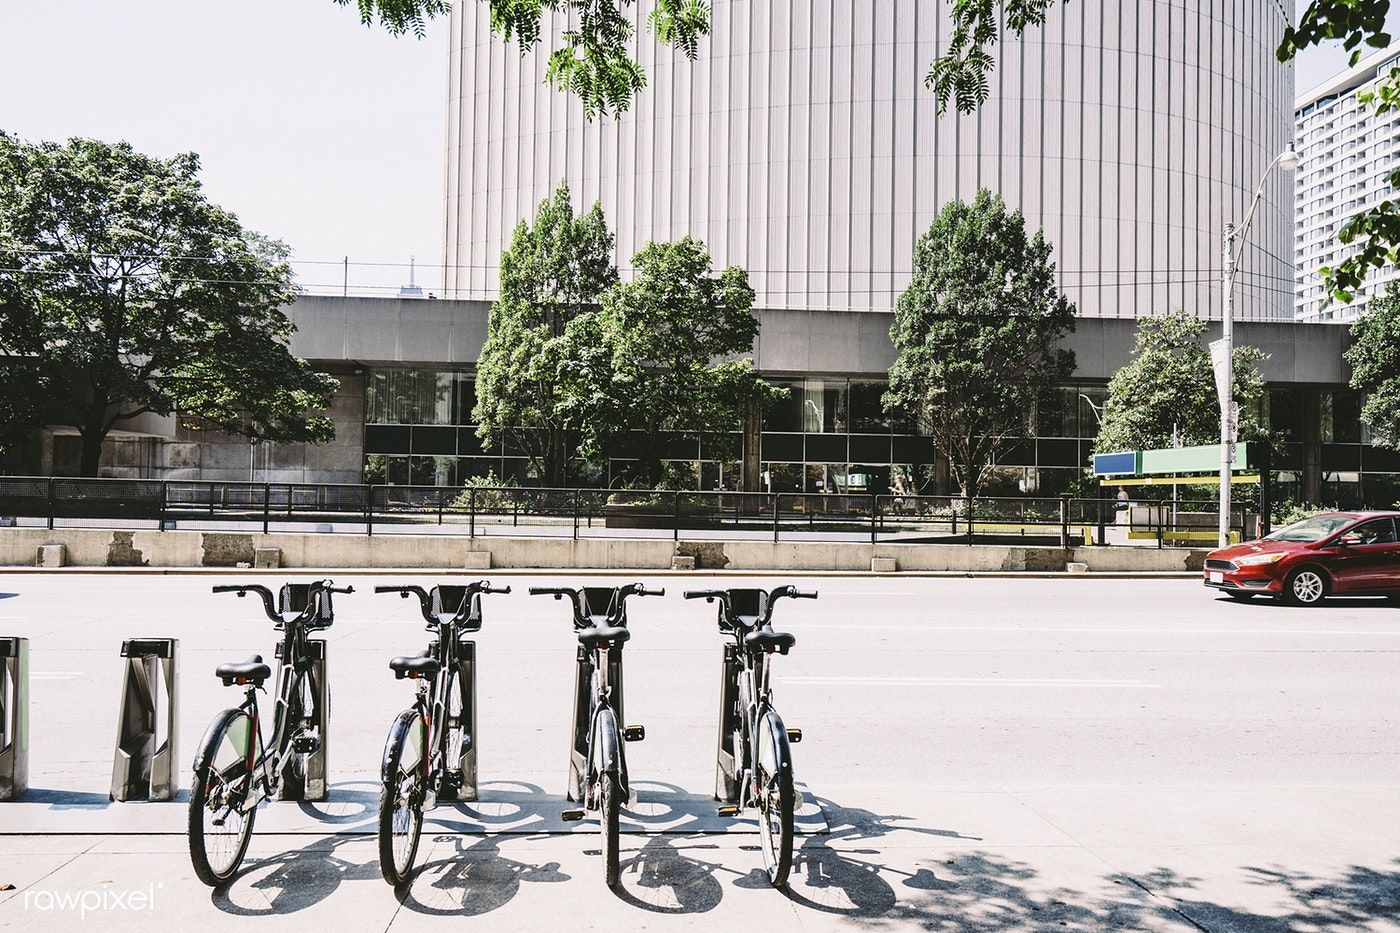 Bicycles by the road in toronto canada free image by